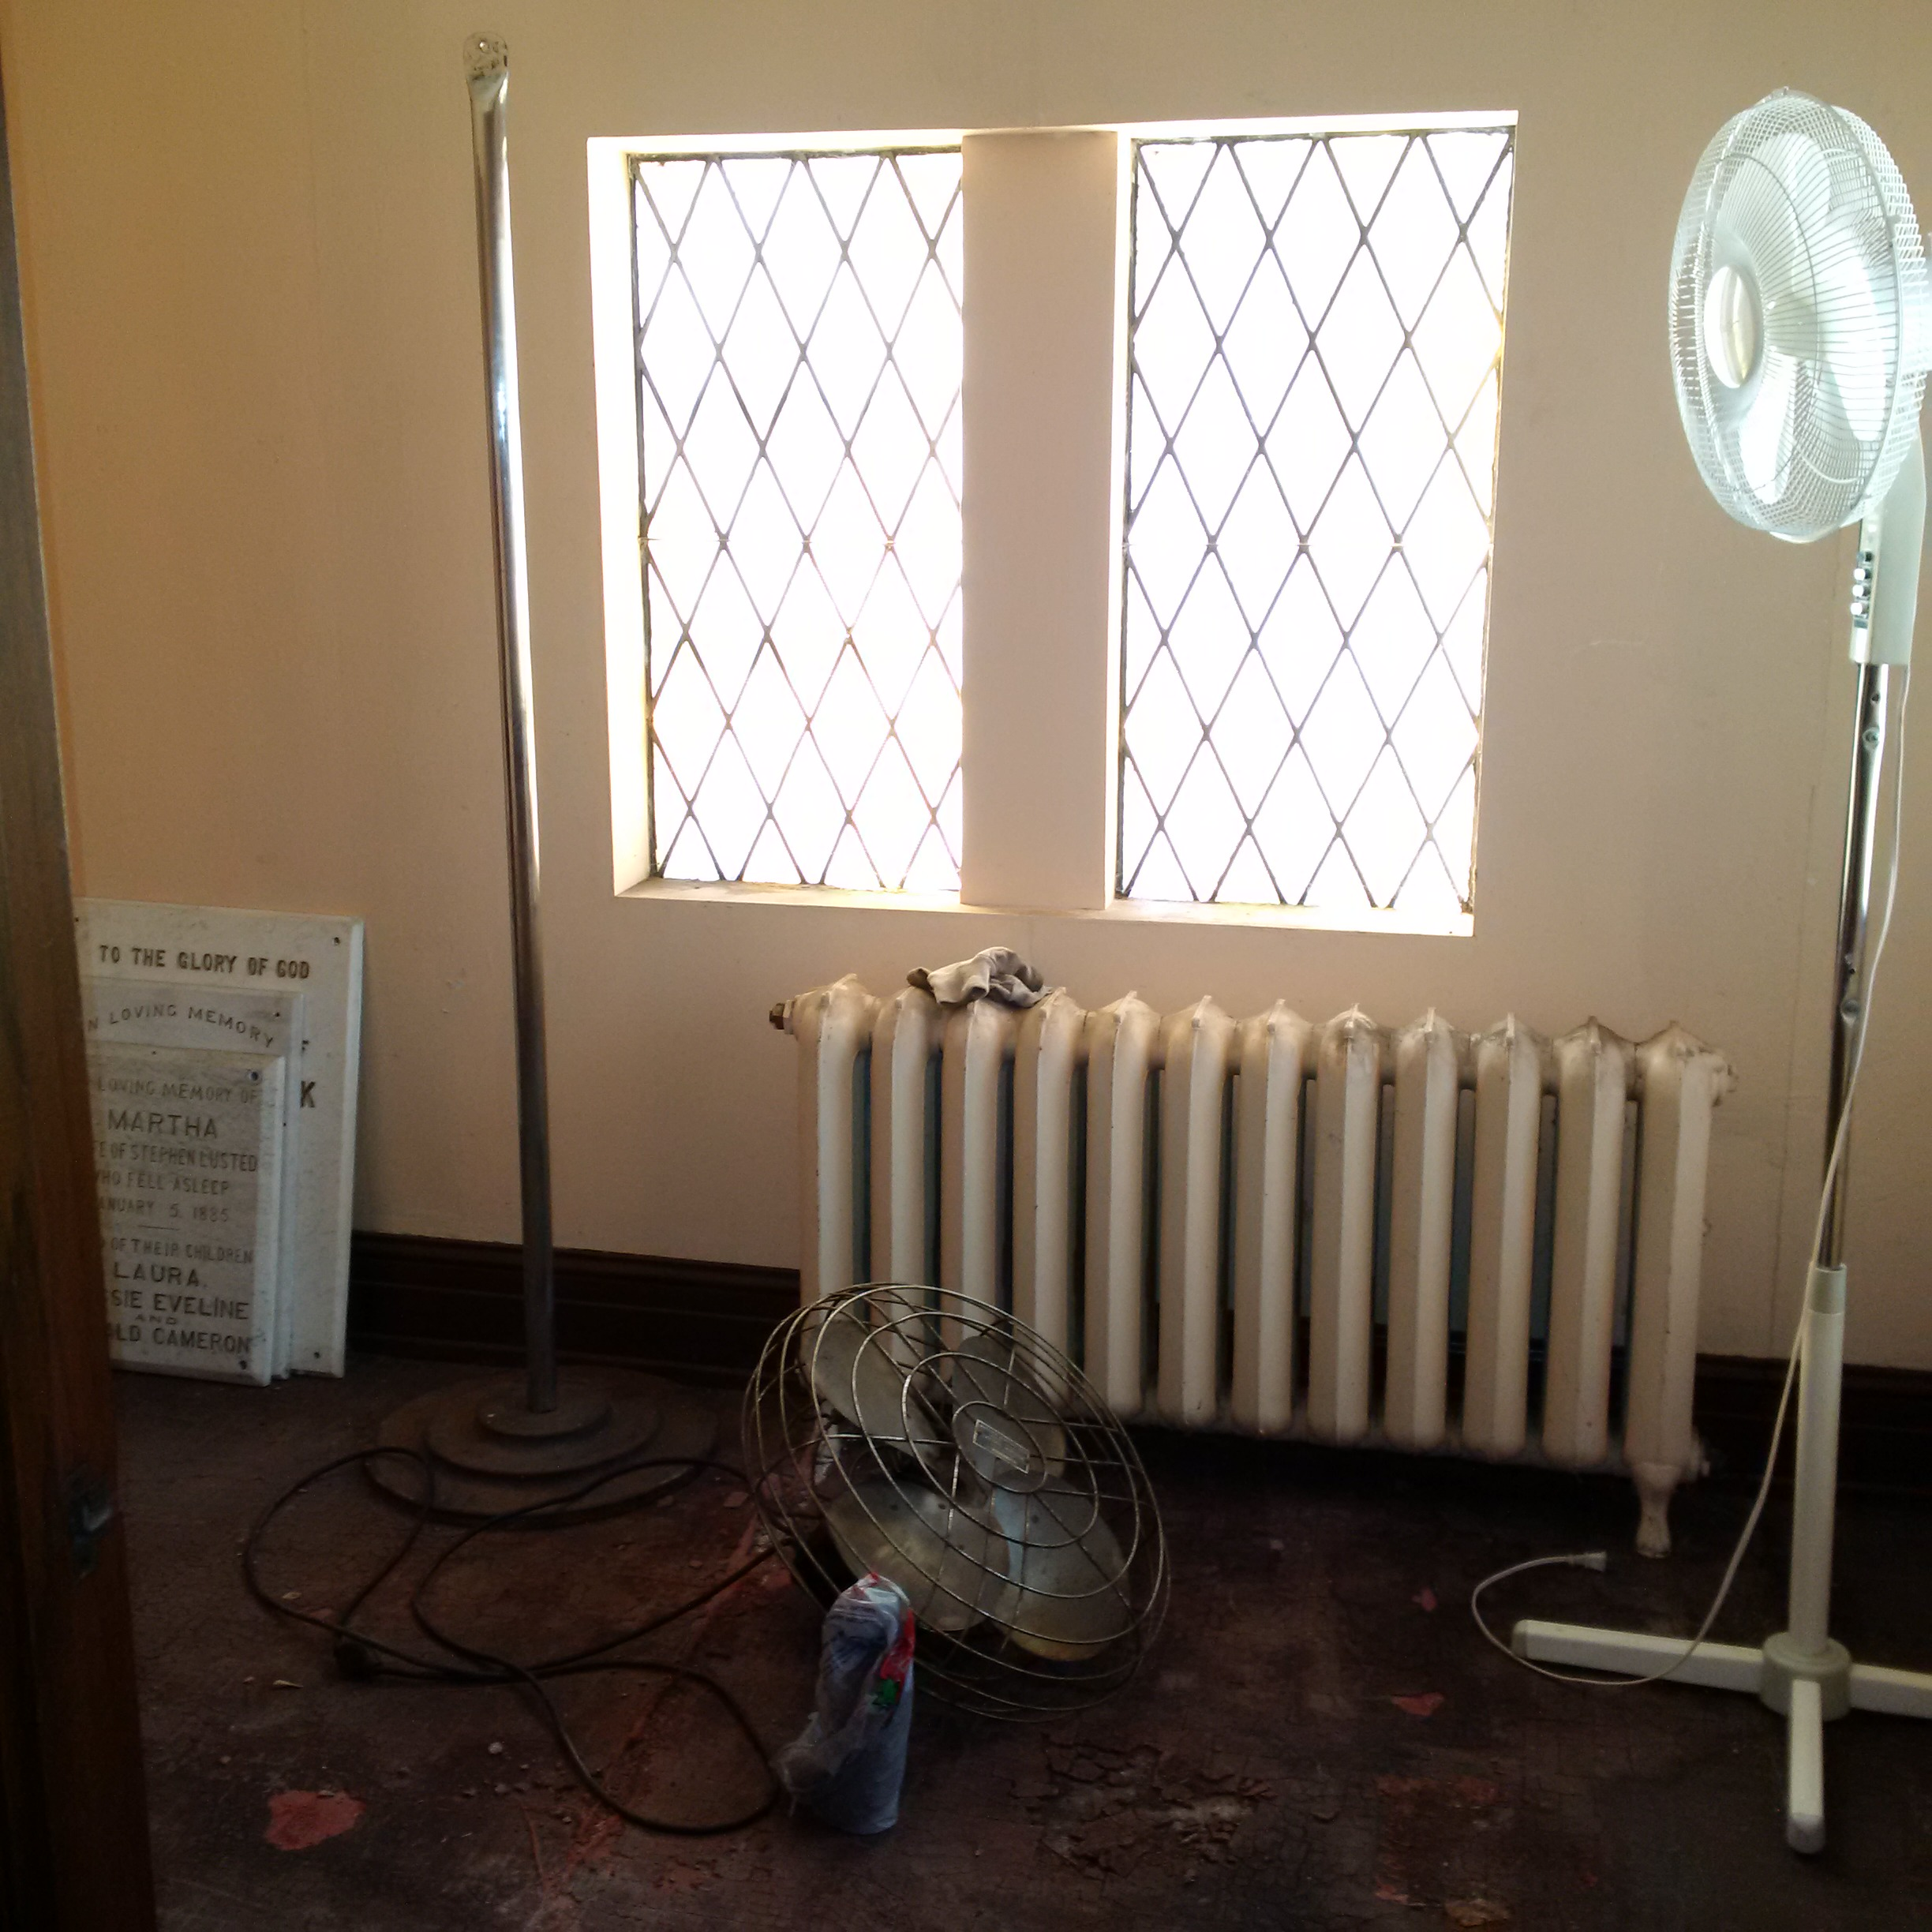 https://0901.nccdn.net/4_2/000/000/05c/c64/Prayer-Room-renovation9.jpg